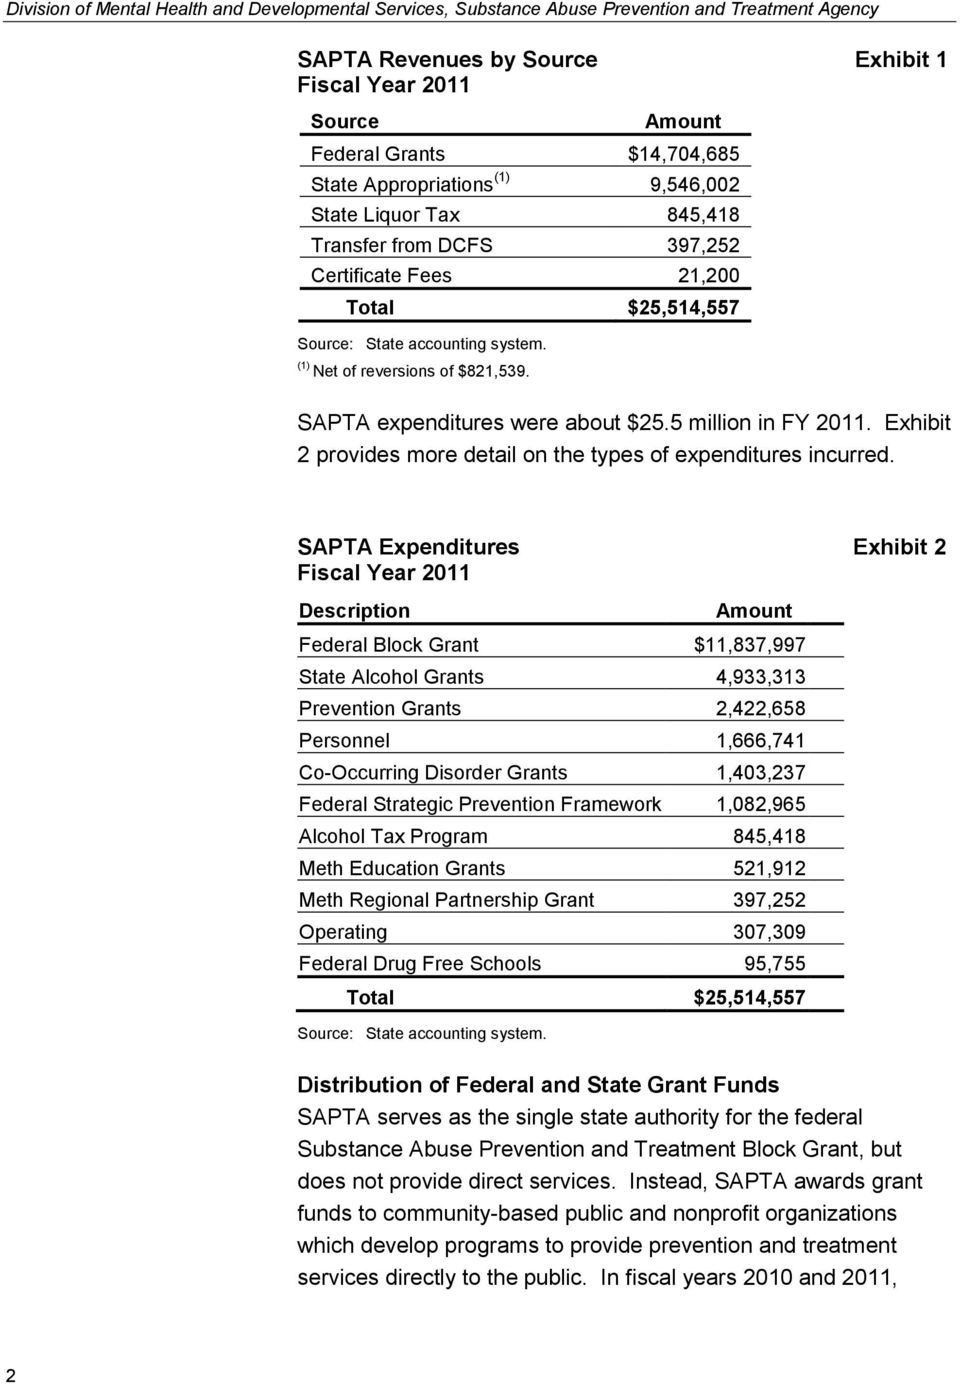 SAPTA expenditures were about $25.5 million in FY 2011. Exhibit 2 provides more detail on the types of expenditures incurred.